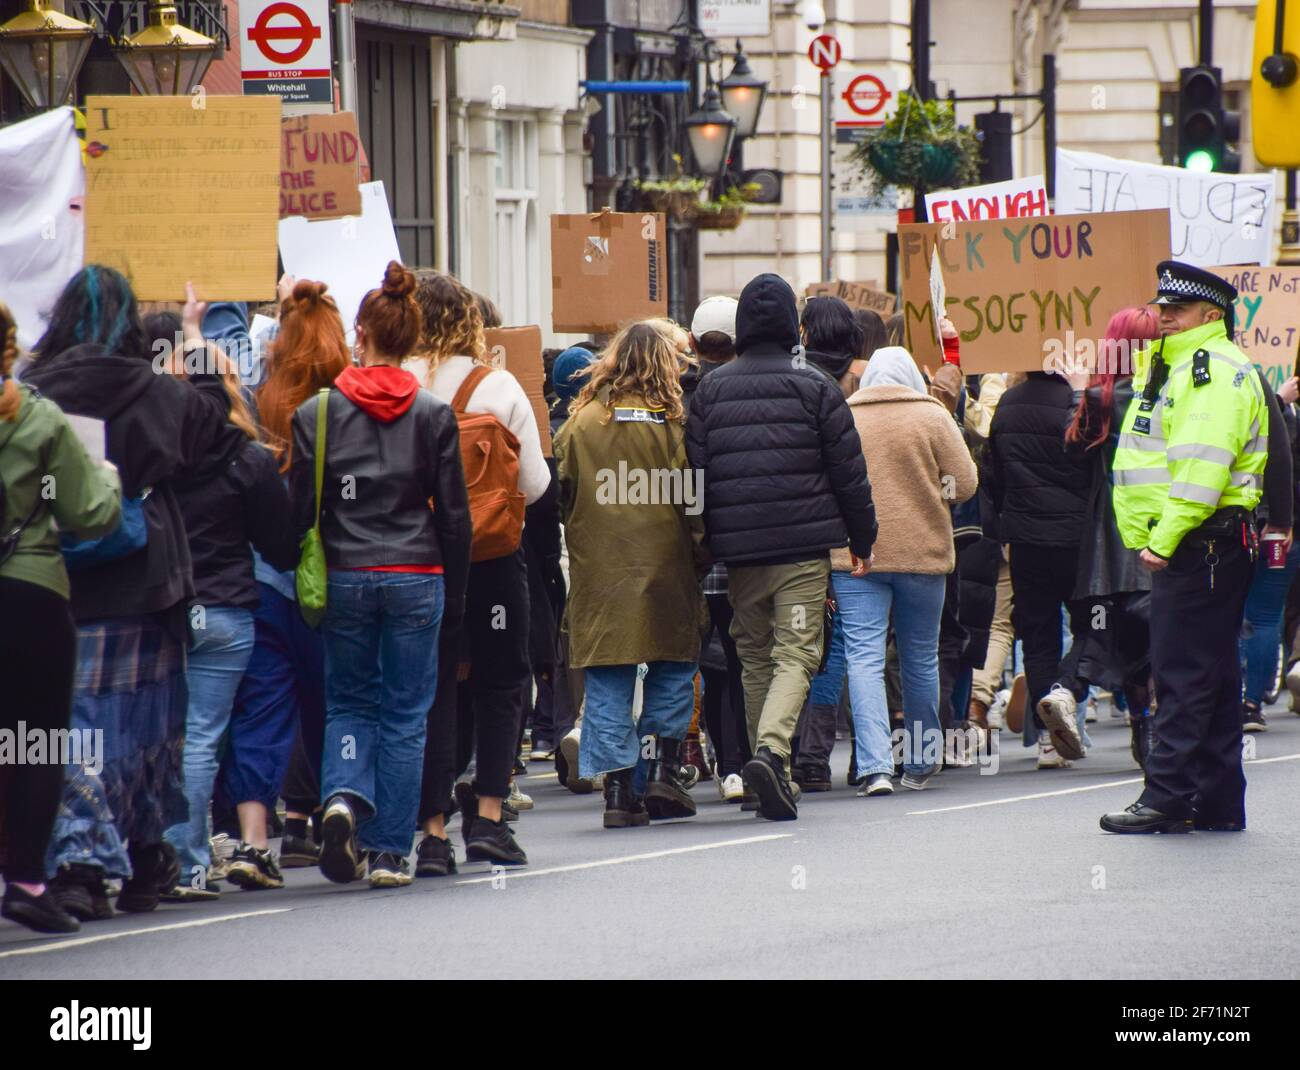 London, United Kingdom. 3rd April 2021. Protesters march down Whitehall towards Parliament Square. Hundreds of demonstrators gathered in Central London for The 97% March to protest against harassment of women. Stock Photo